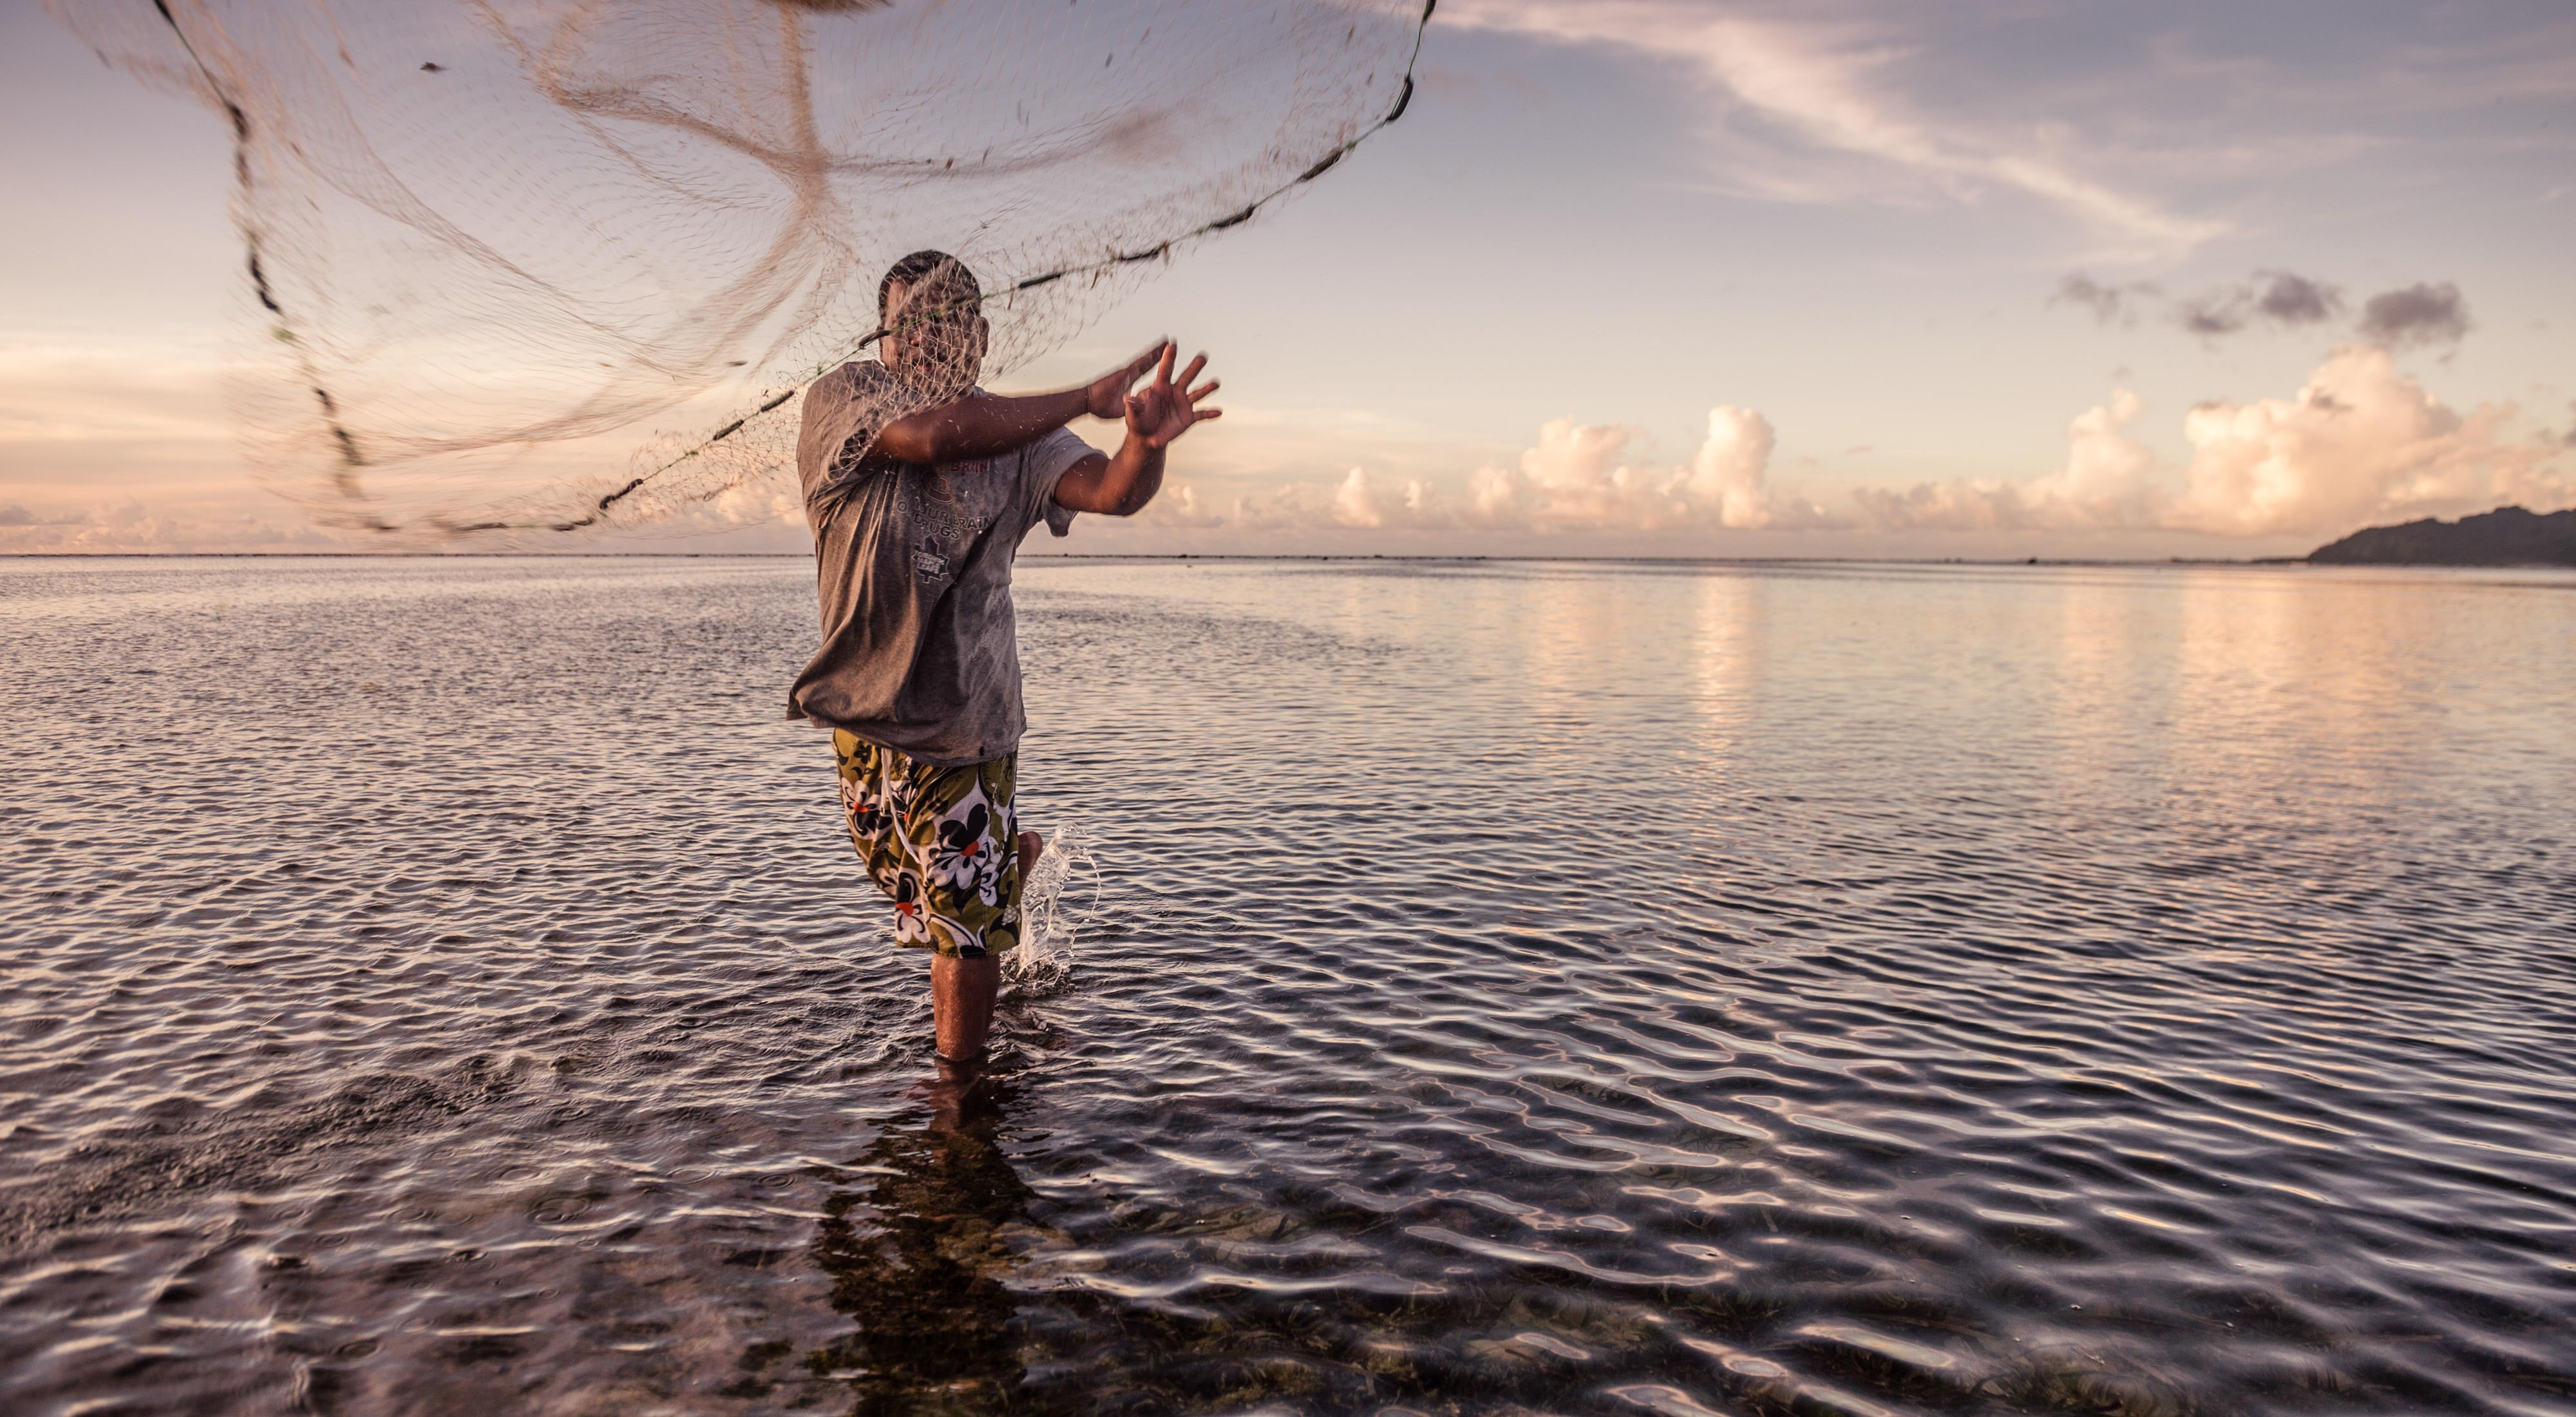 A reef fisherman from Walalung Village on the island of Kosrae, Micronesia.